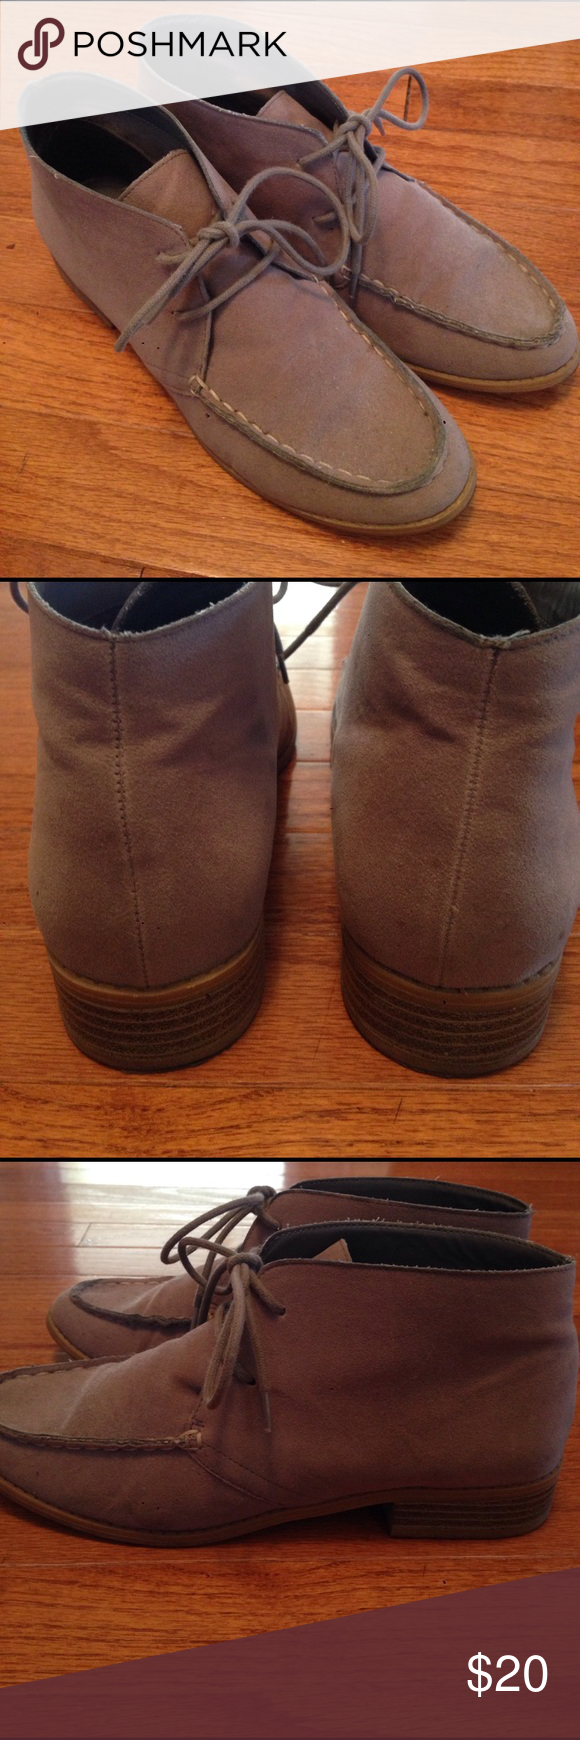 117eb5299a15 Old Navy Gray Suede Booties Old Navy Gray Booties